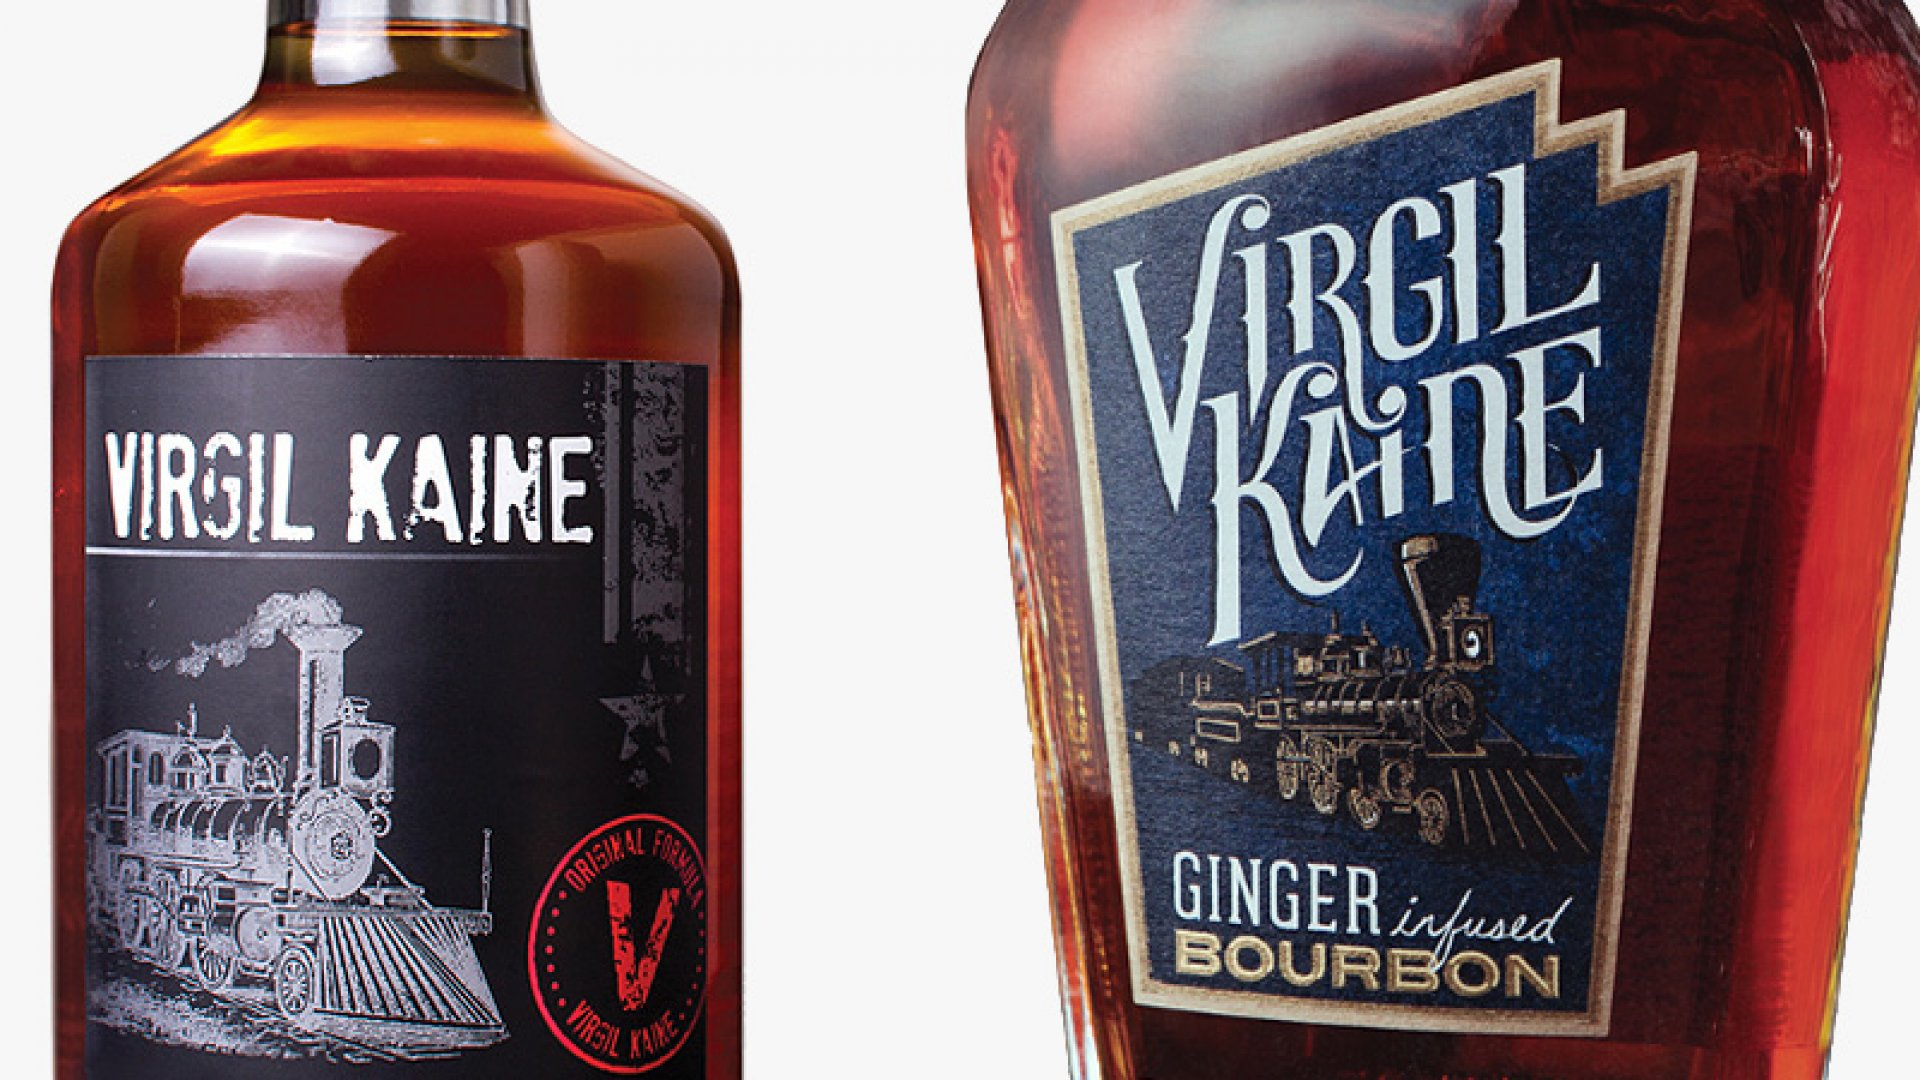 How Virgil Kaine Whiskey Got Its New Look